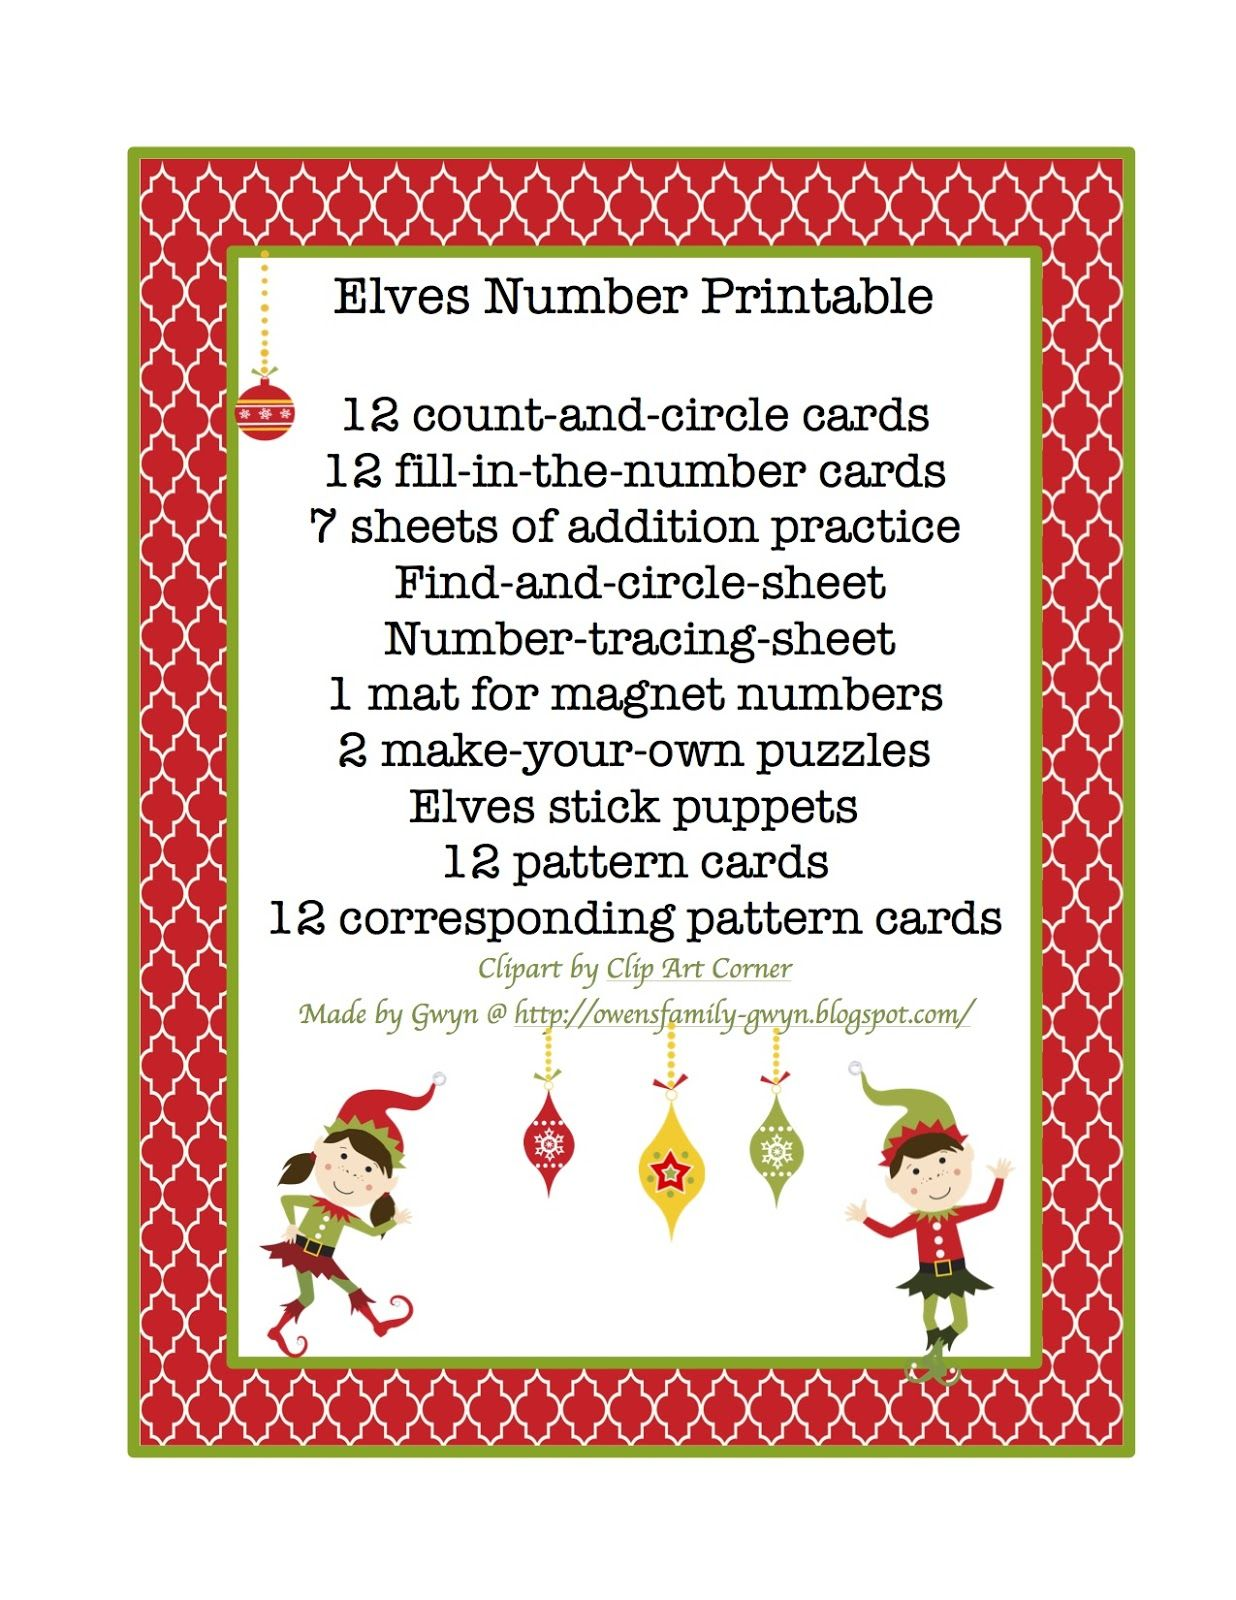 Elves Number Printable 24 Pages Of Math Exercises